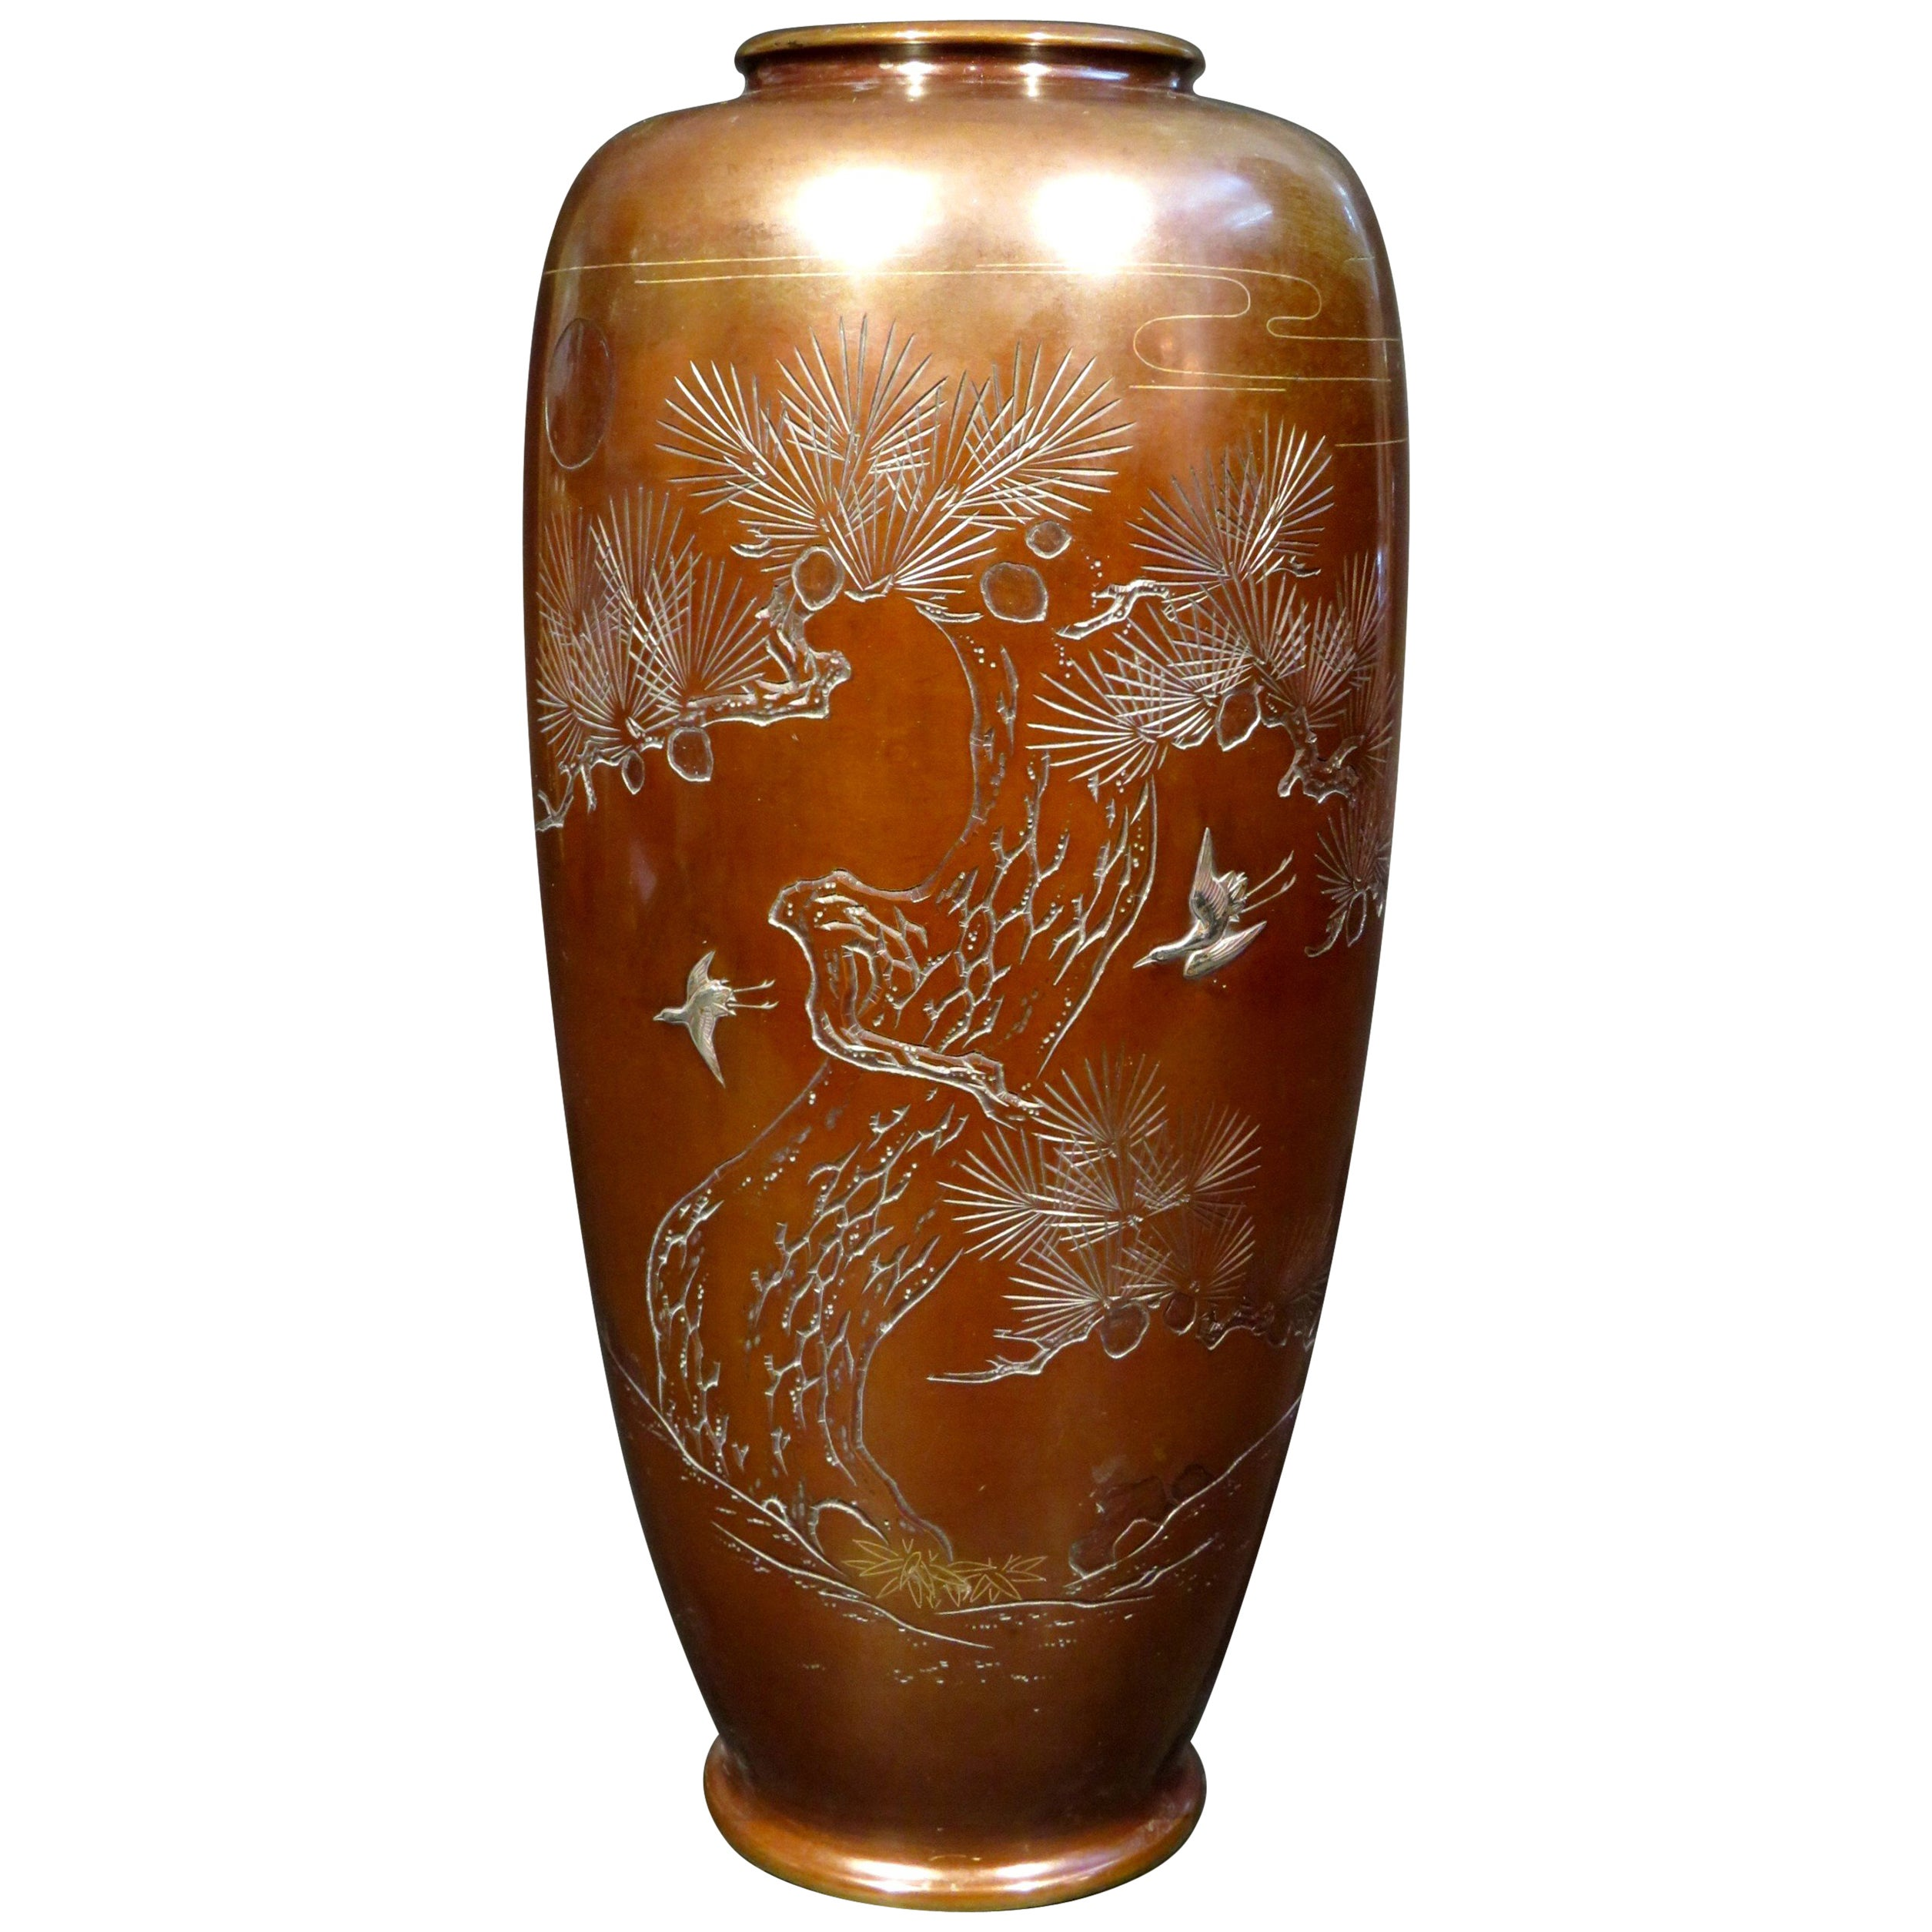 A Large Patinated Japanese Bronze & Mixed Metal Vase, Meiji Period (1868-1912)